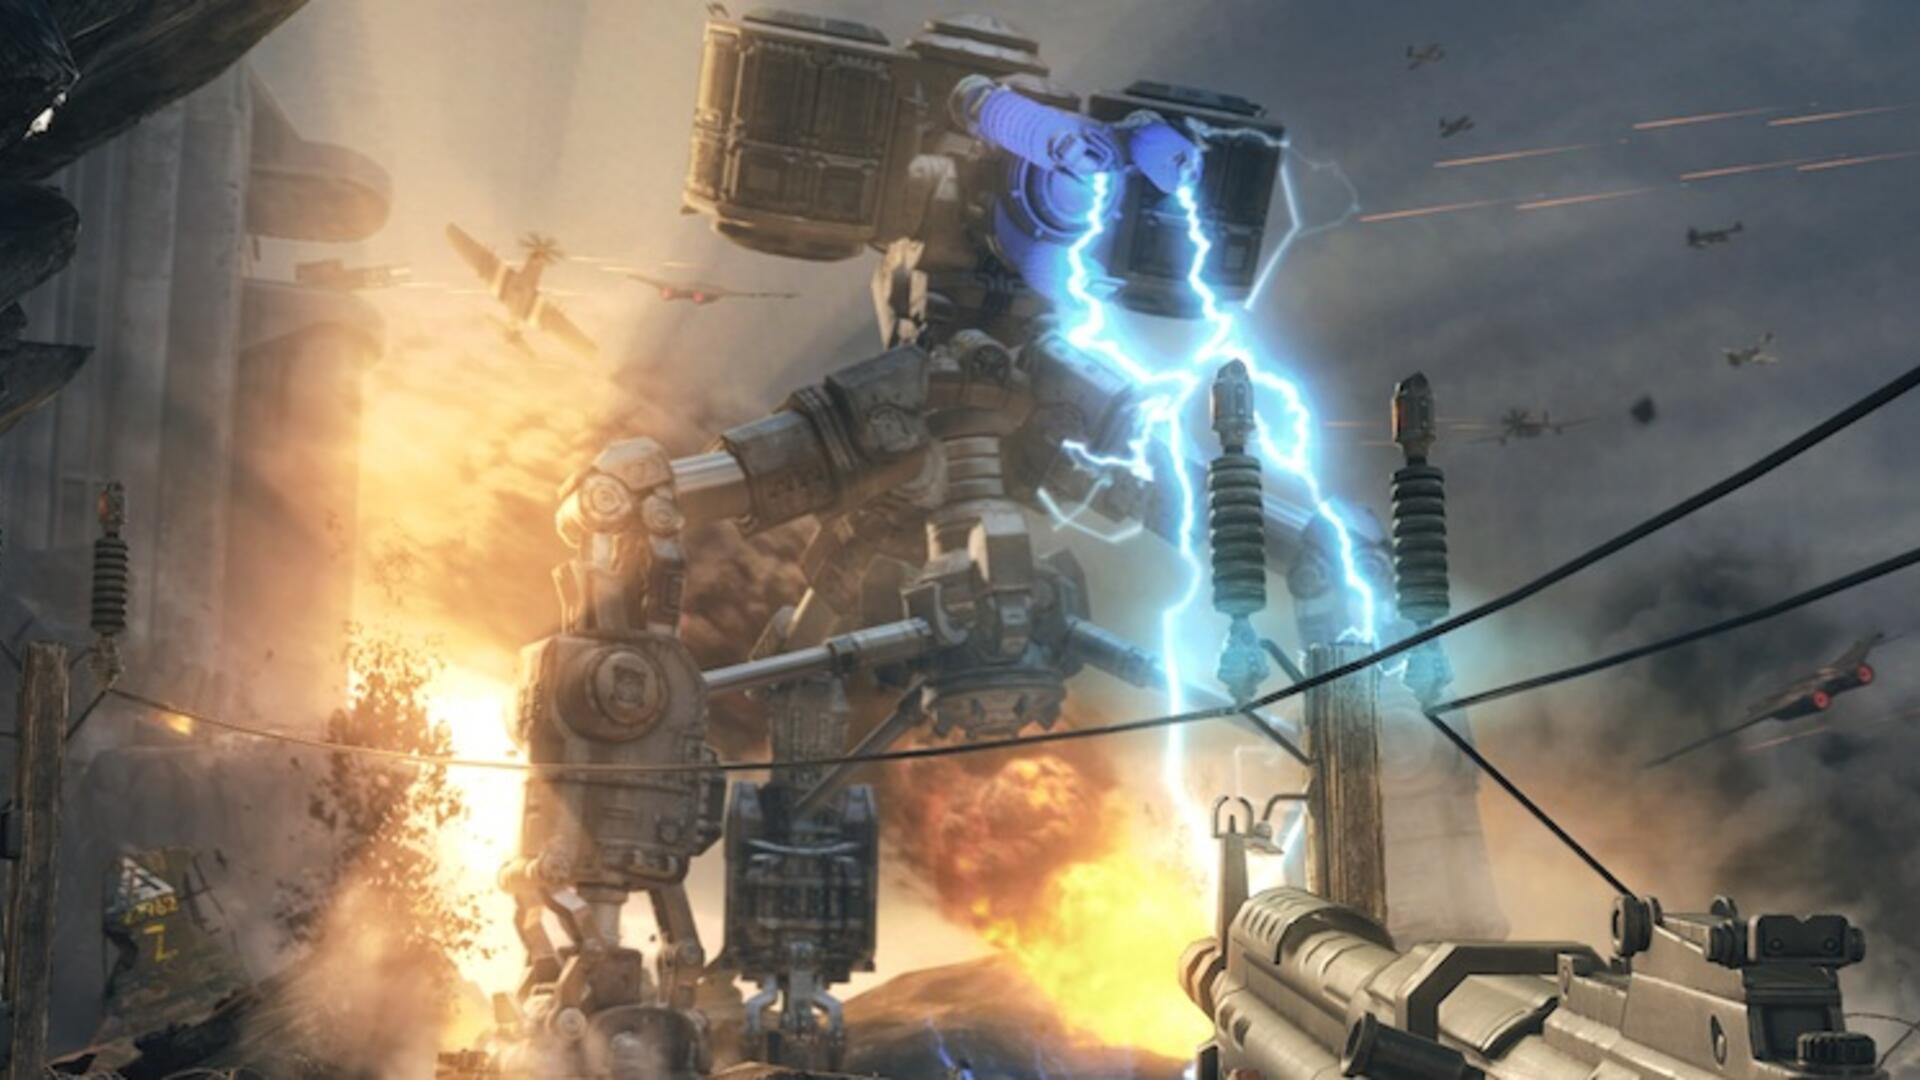 Does an Old-Fashioned FPS Like Wolfenstein: The New Order Have a Place Today?